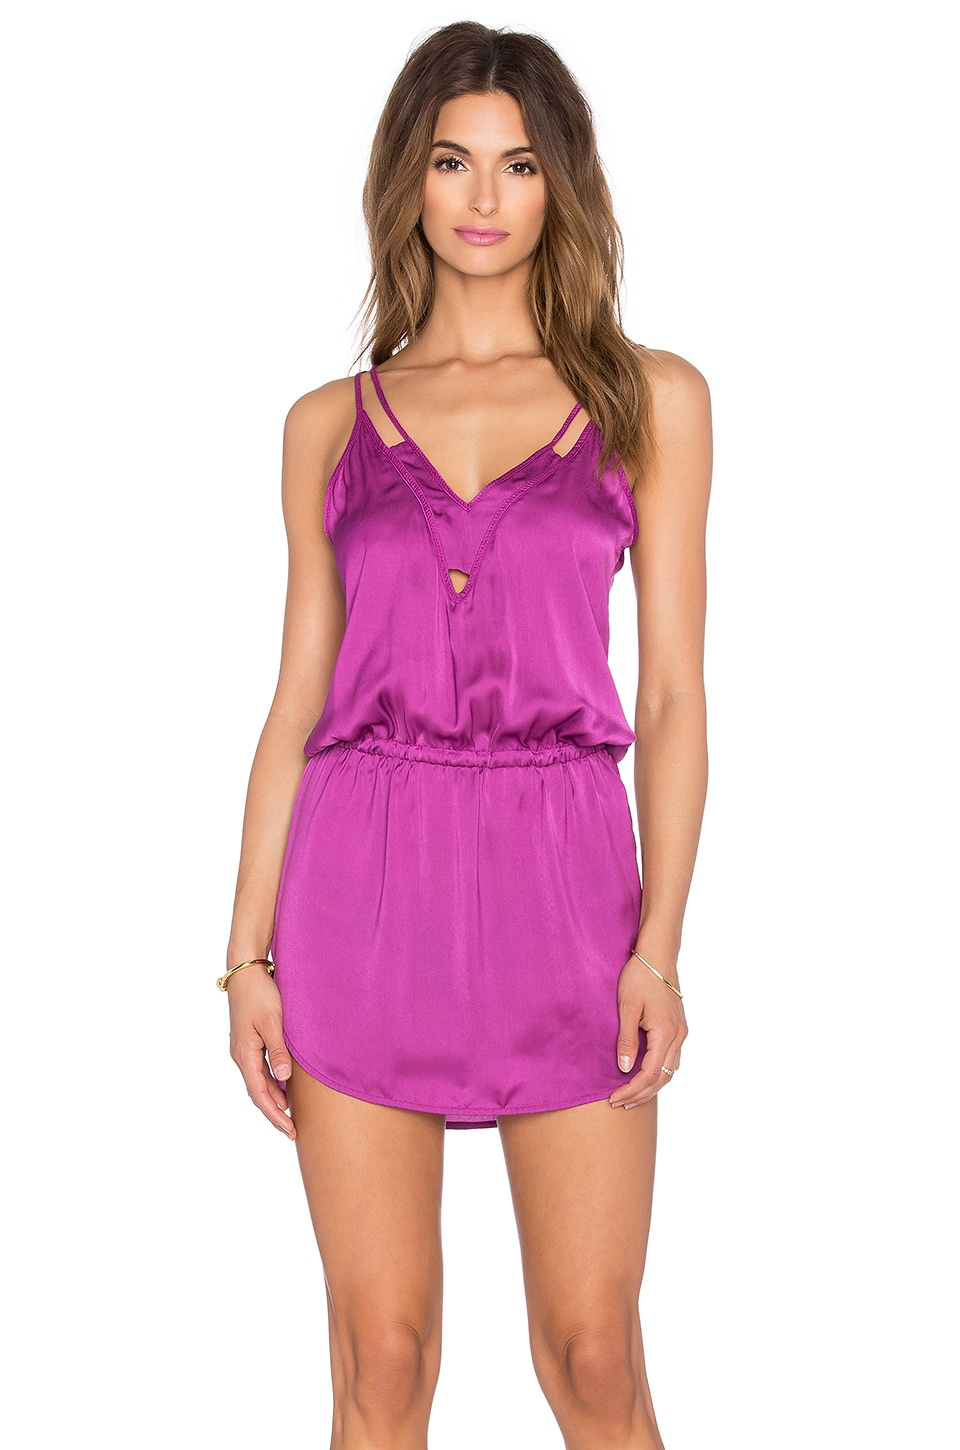 SOFIA by ViX Edgy Mini Dress in Solid Grape